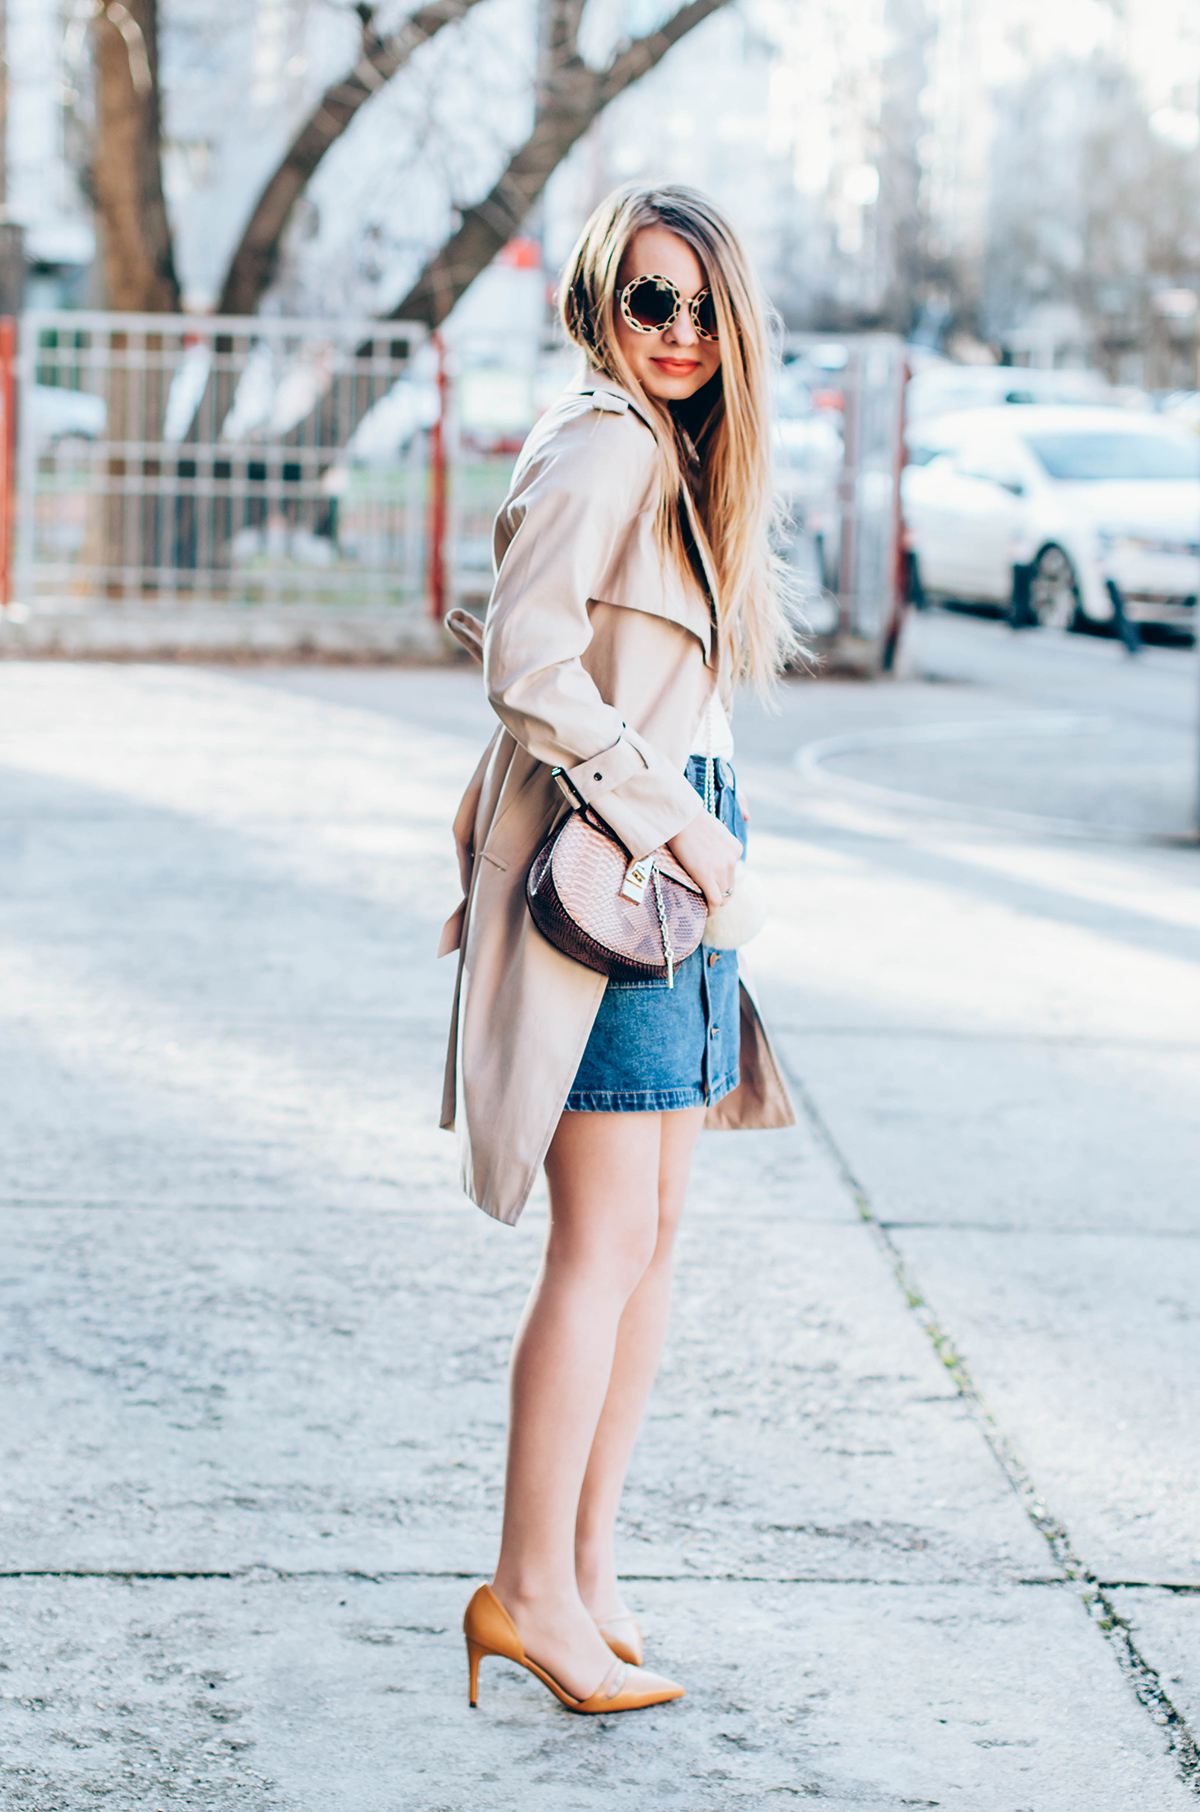 shein-buttoned-denim-skirt-trench-coat-outfit-snake-chloe-bag-fur-pom-pom-outfit (5)